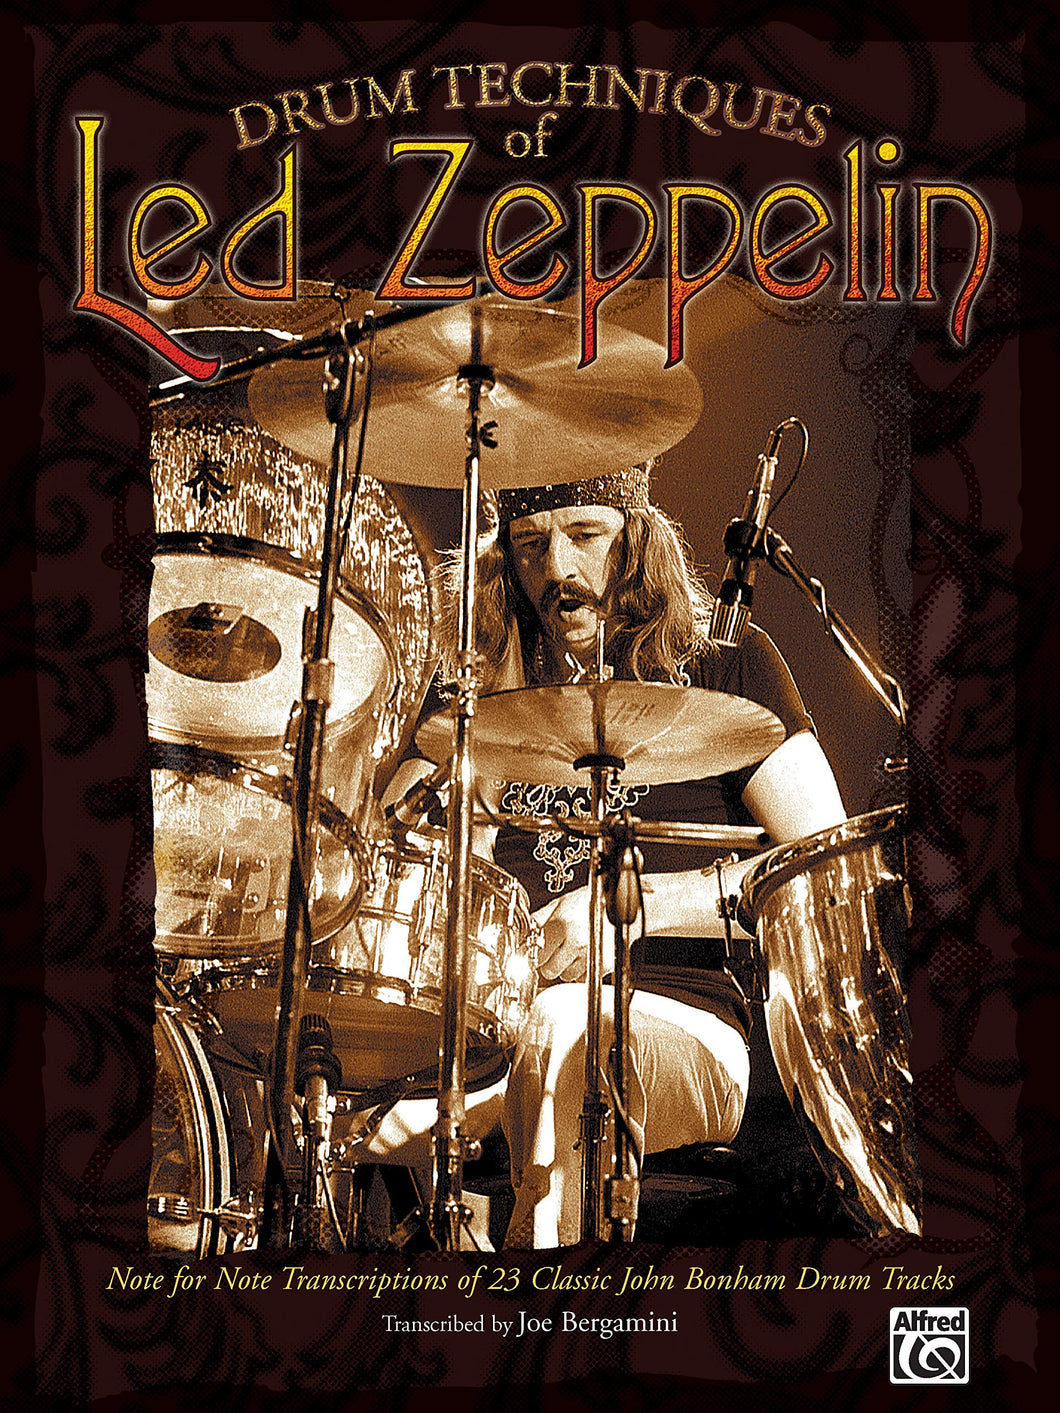 Fool in the Rain - Led Zeppelin - Collection of Drum Transcriptions / Drum Sheet Music - Alfred Music DTLZNFNT